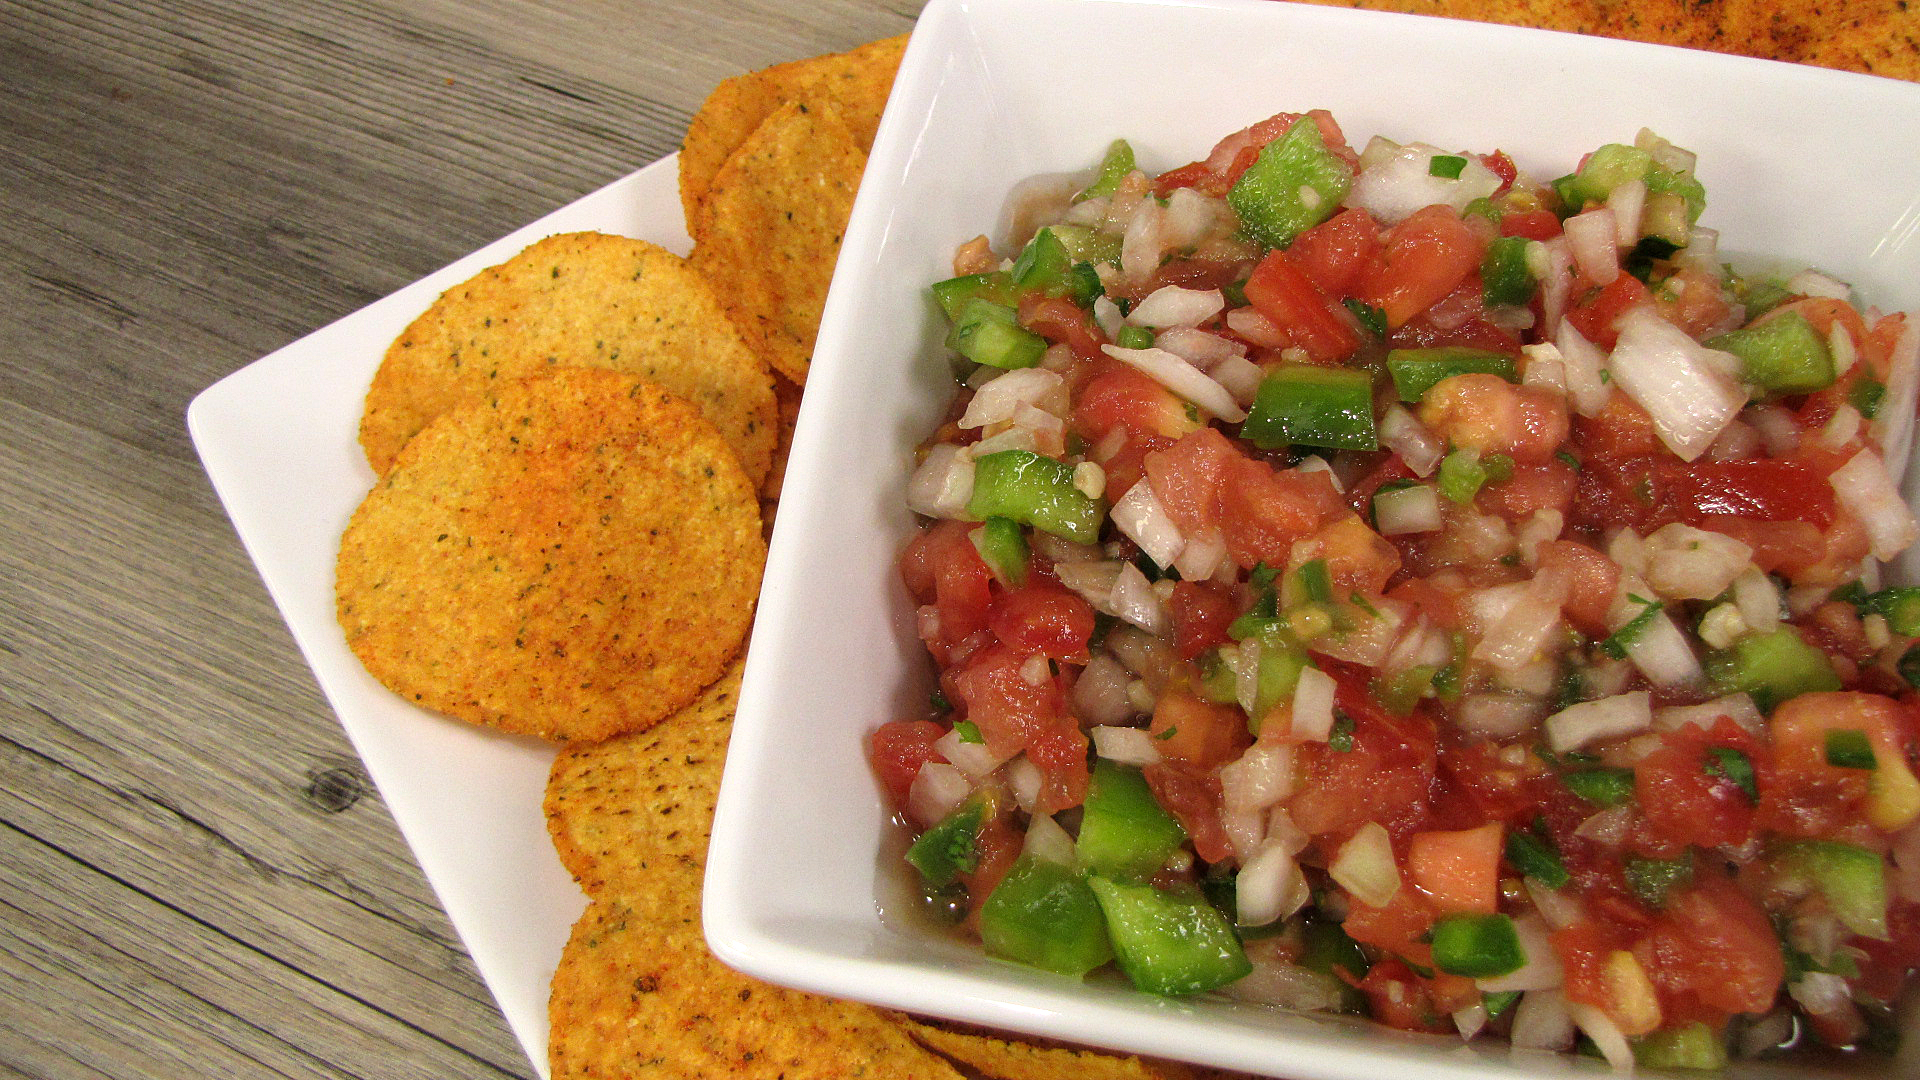 This homemade salsa can help you meet your daily vegetable recommendations. (NDSU photo)